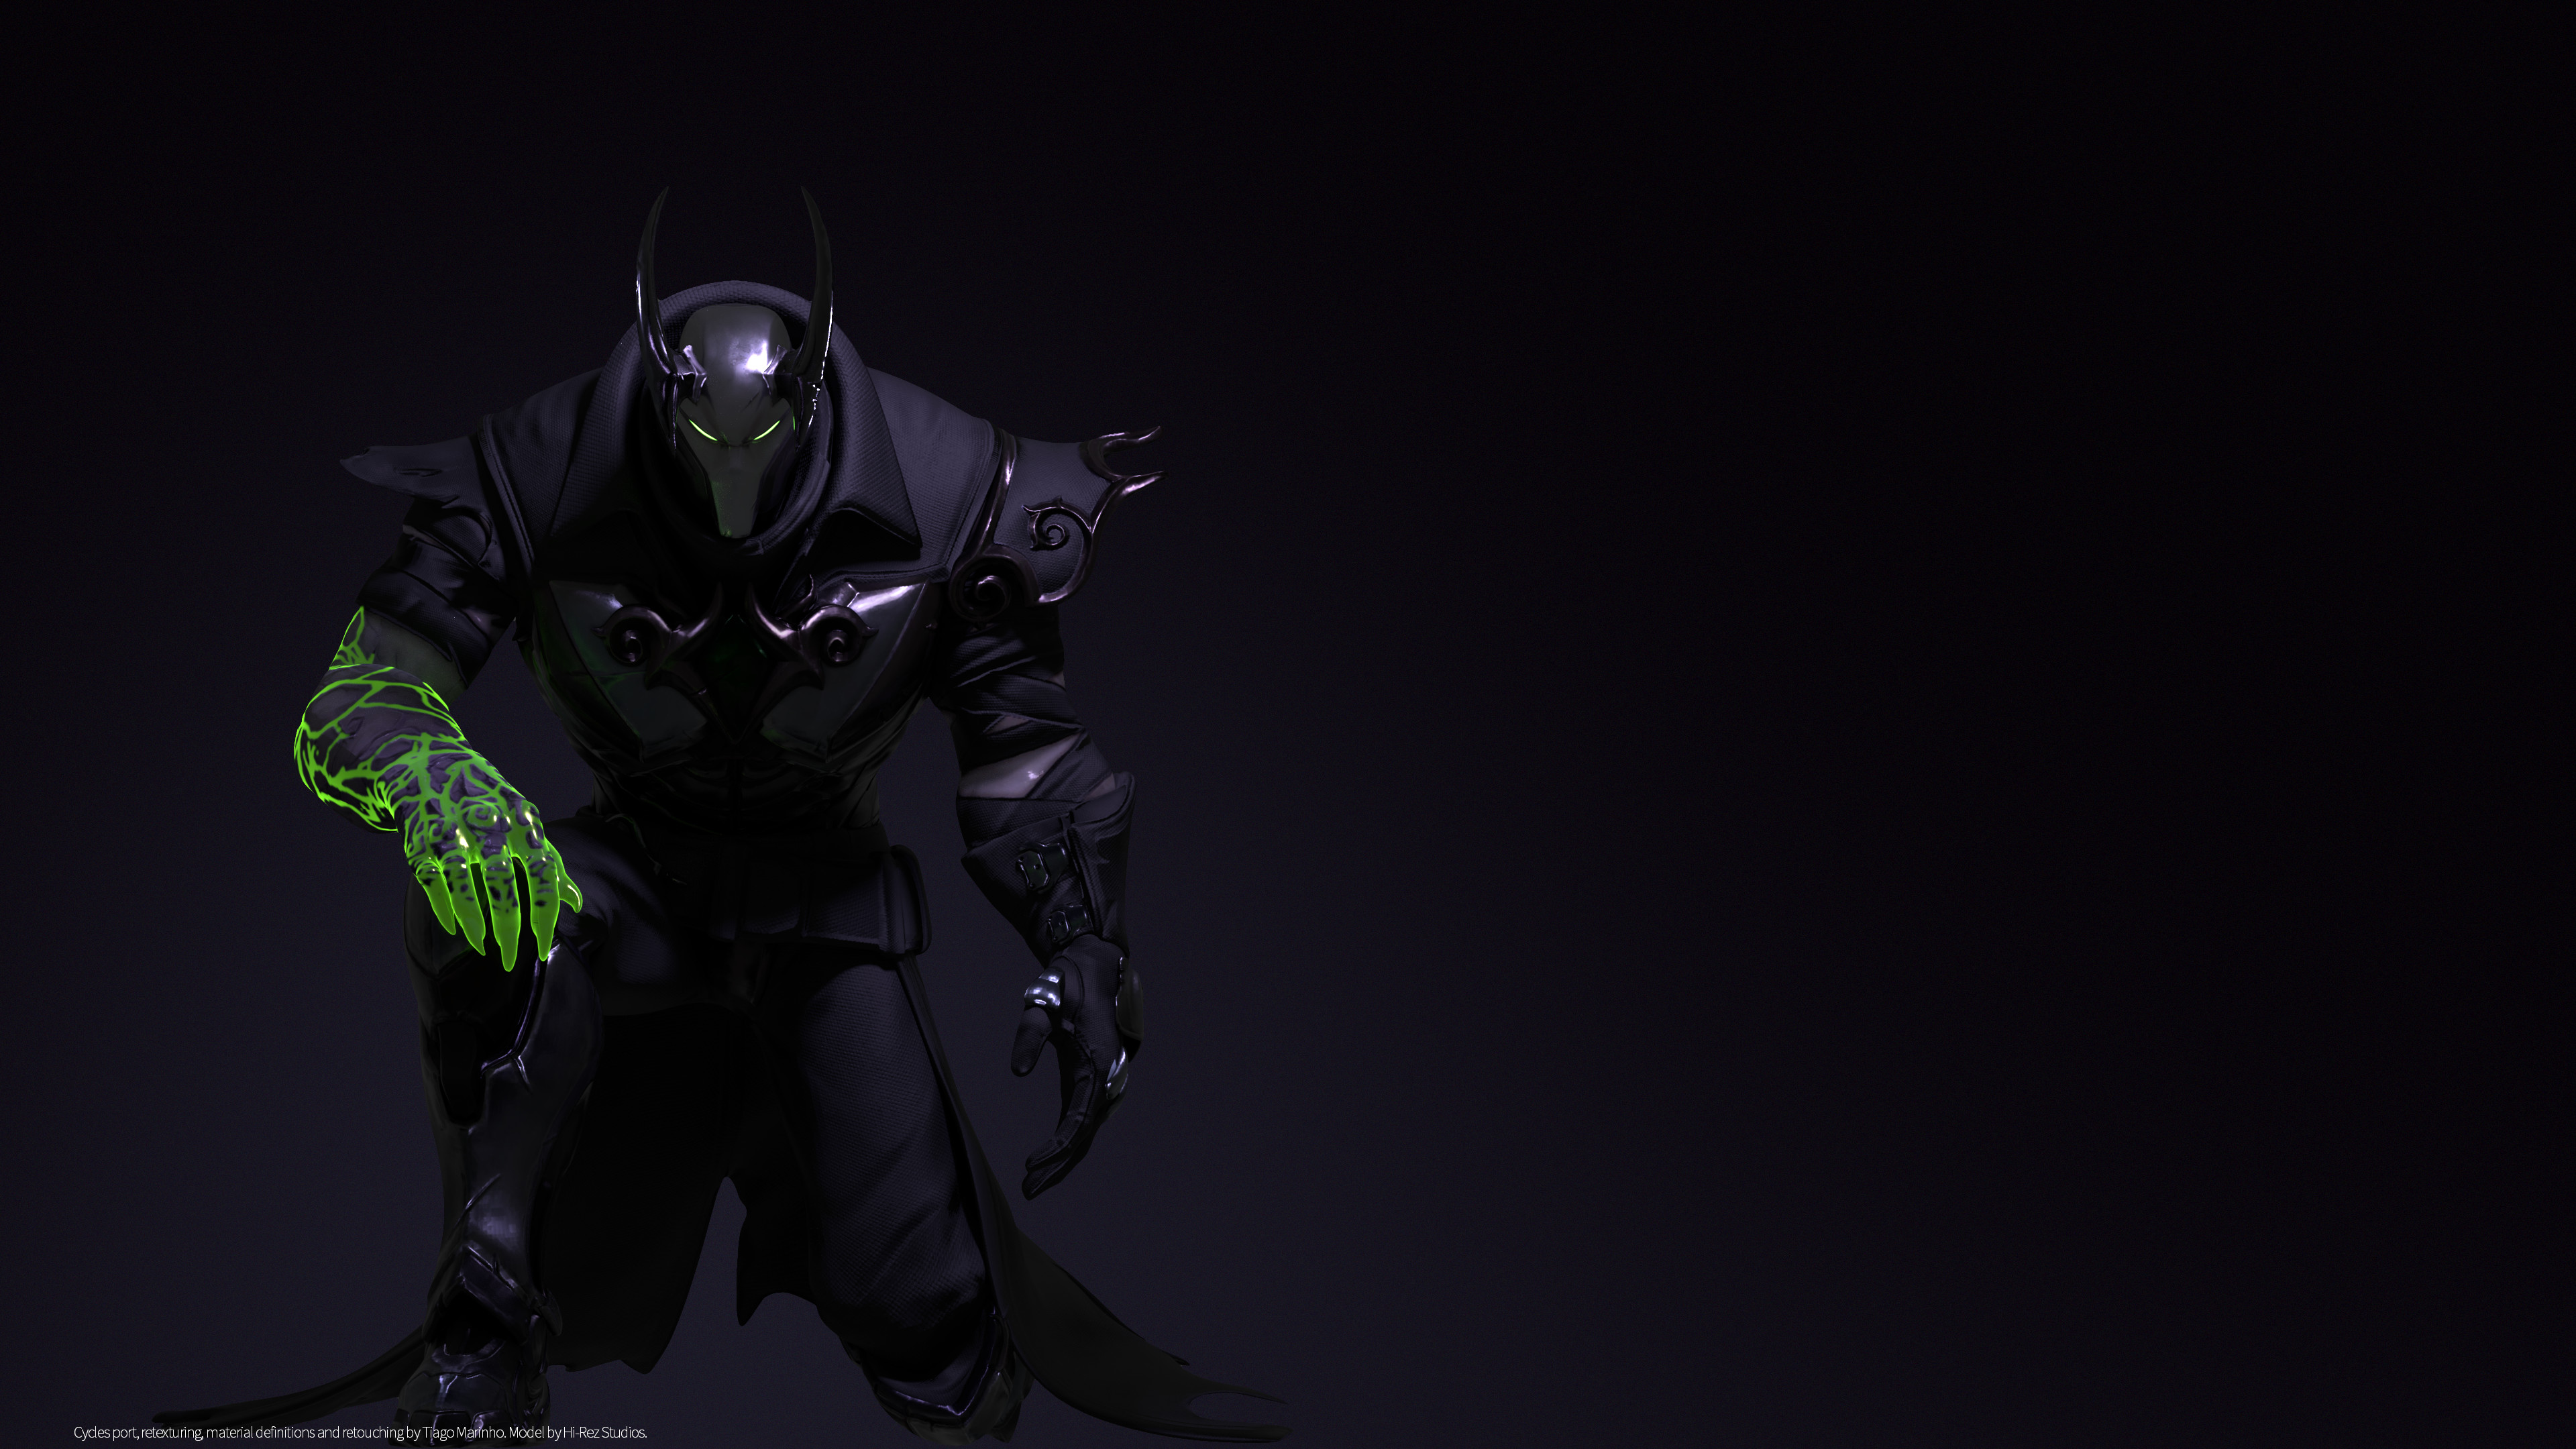 3840x2160 ART4K Ray-Traced Androxus Wallpaper by tiagomeraki ...